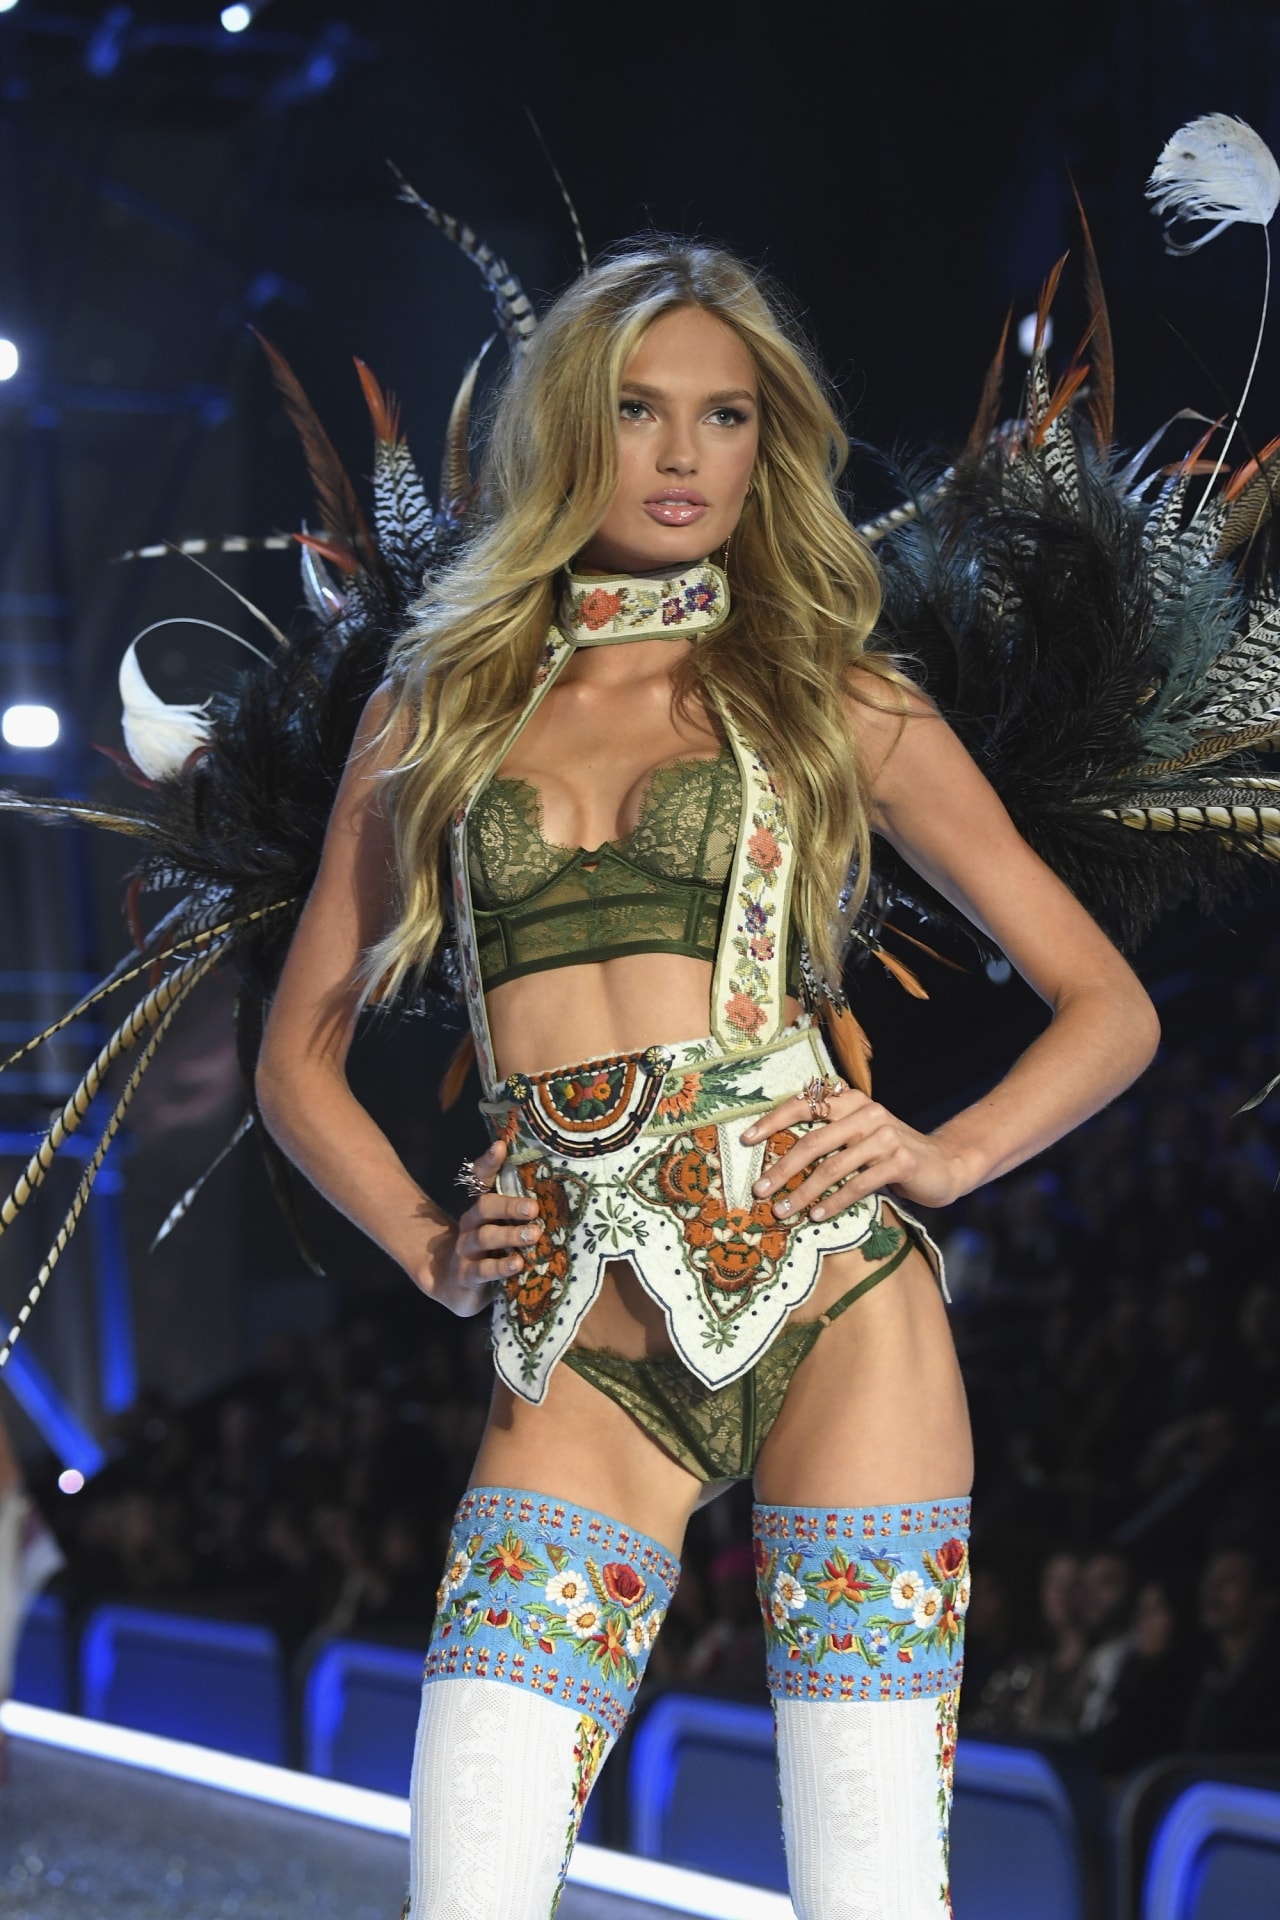 Victoria's Secret Angel Romee Strijd shares exactly what beauty products to use to get a supermodel glow